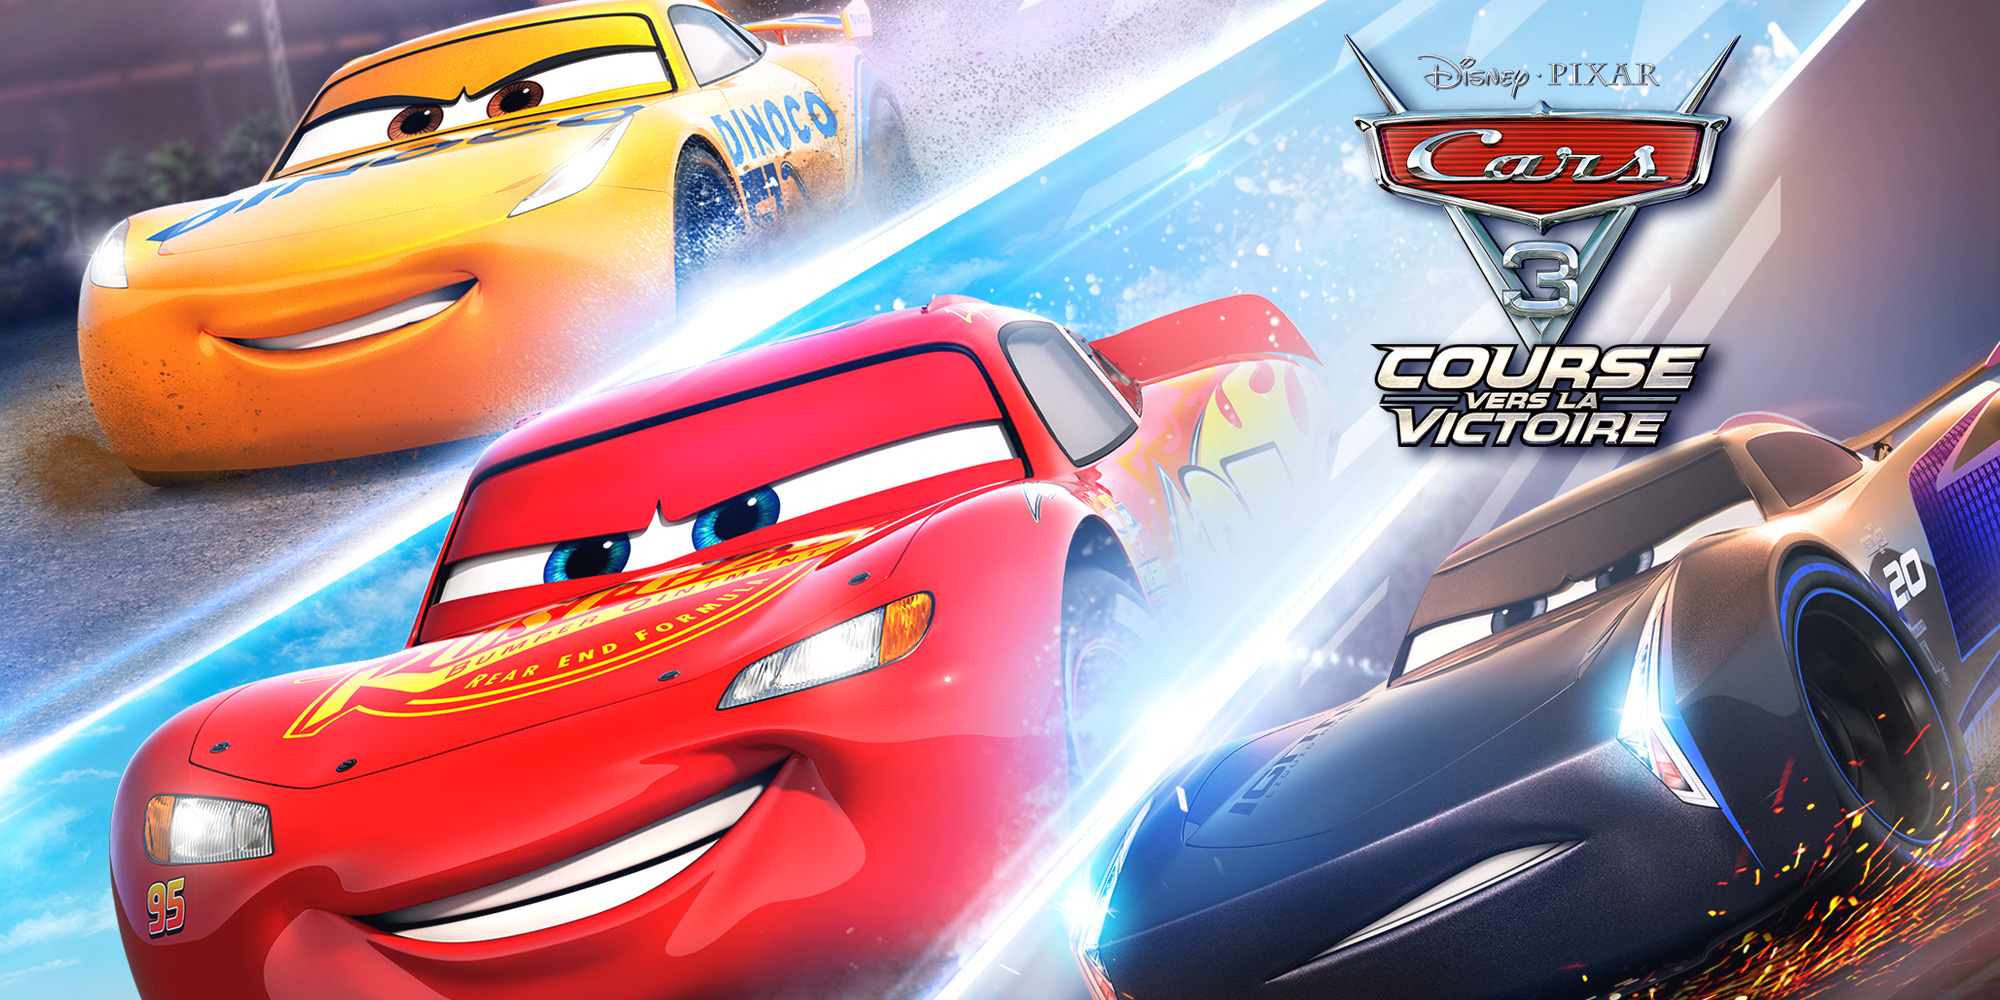 cars 3 course vers la victoire wii u jeux nintendo. Black Bedroom Furniture Sets. Home Design Ideas